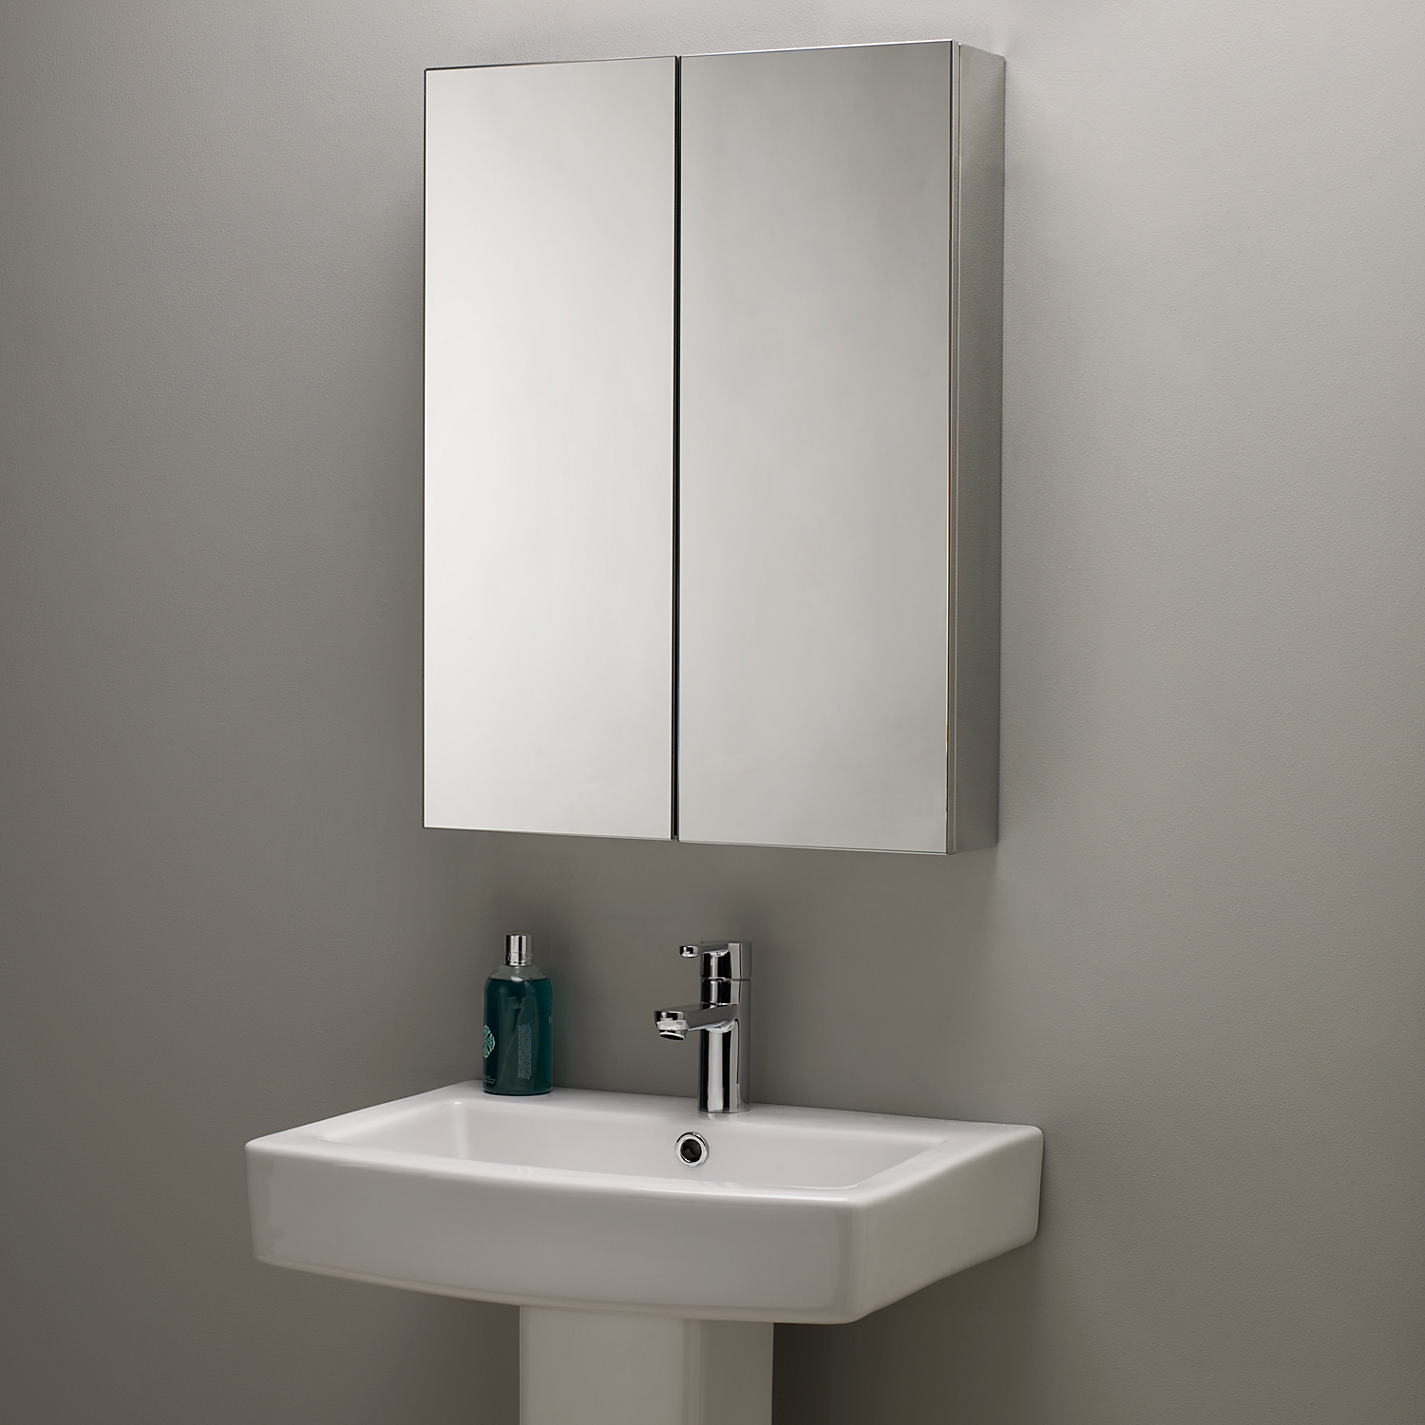 Mirrored Bathroom Cabinets John Lewis